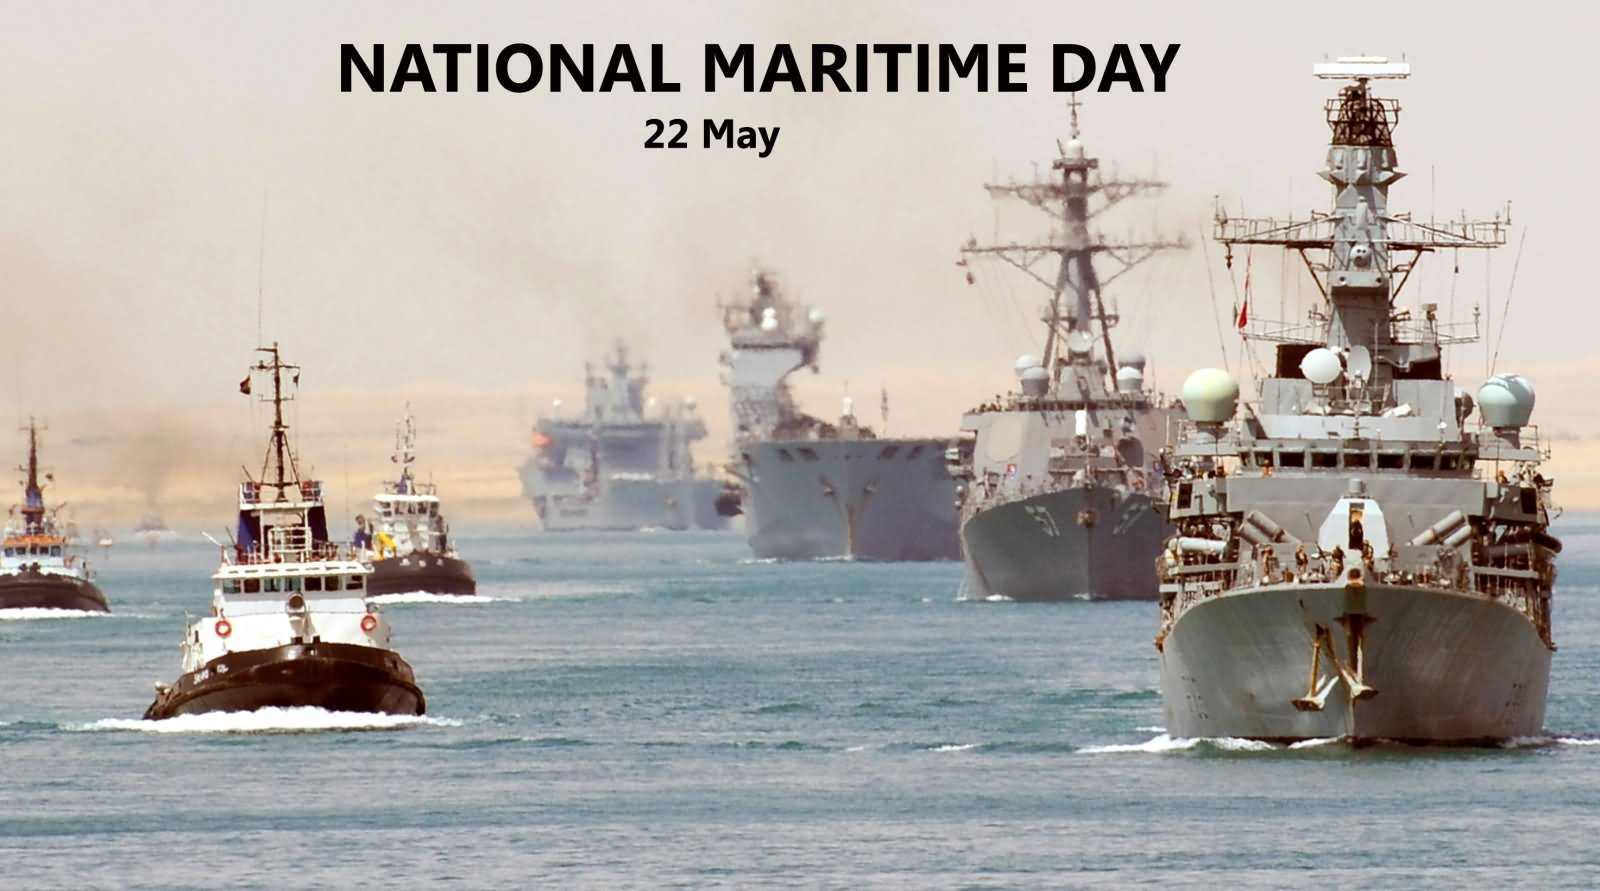 20 National Maritime Day 2016 Wish Pictures And Images 1600x891